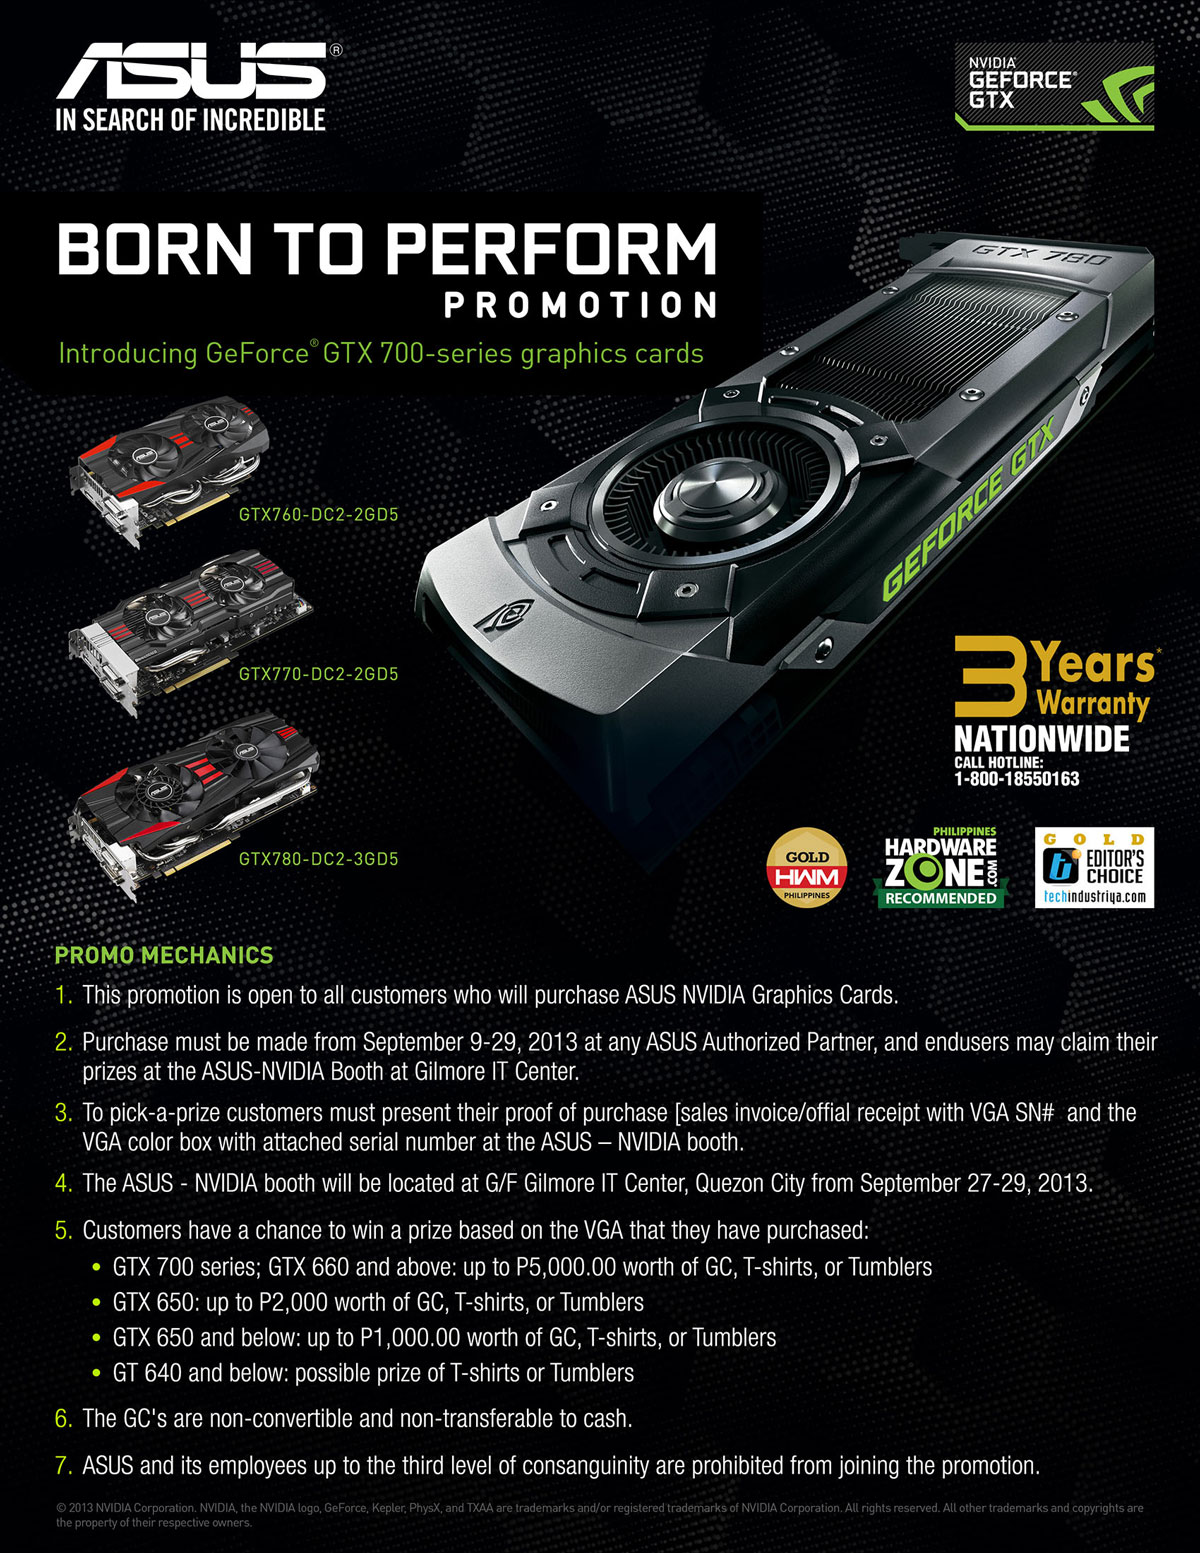 ASUS-GTX-700-Series-Promotion